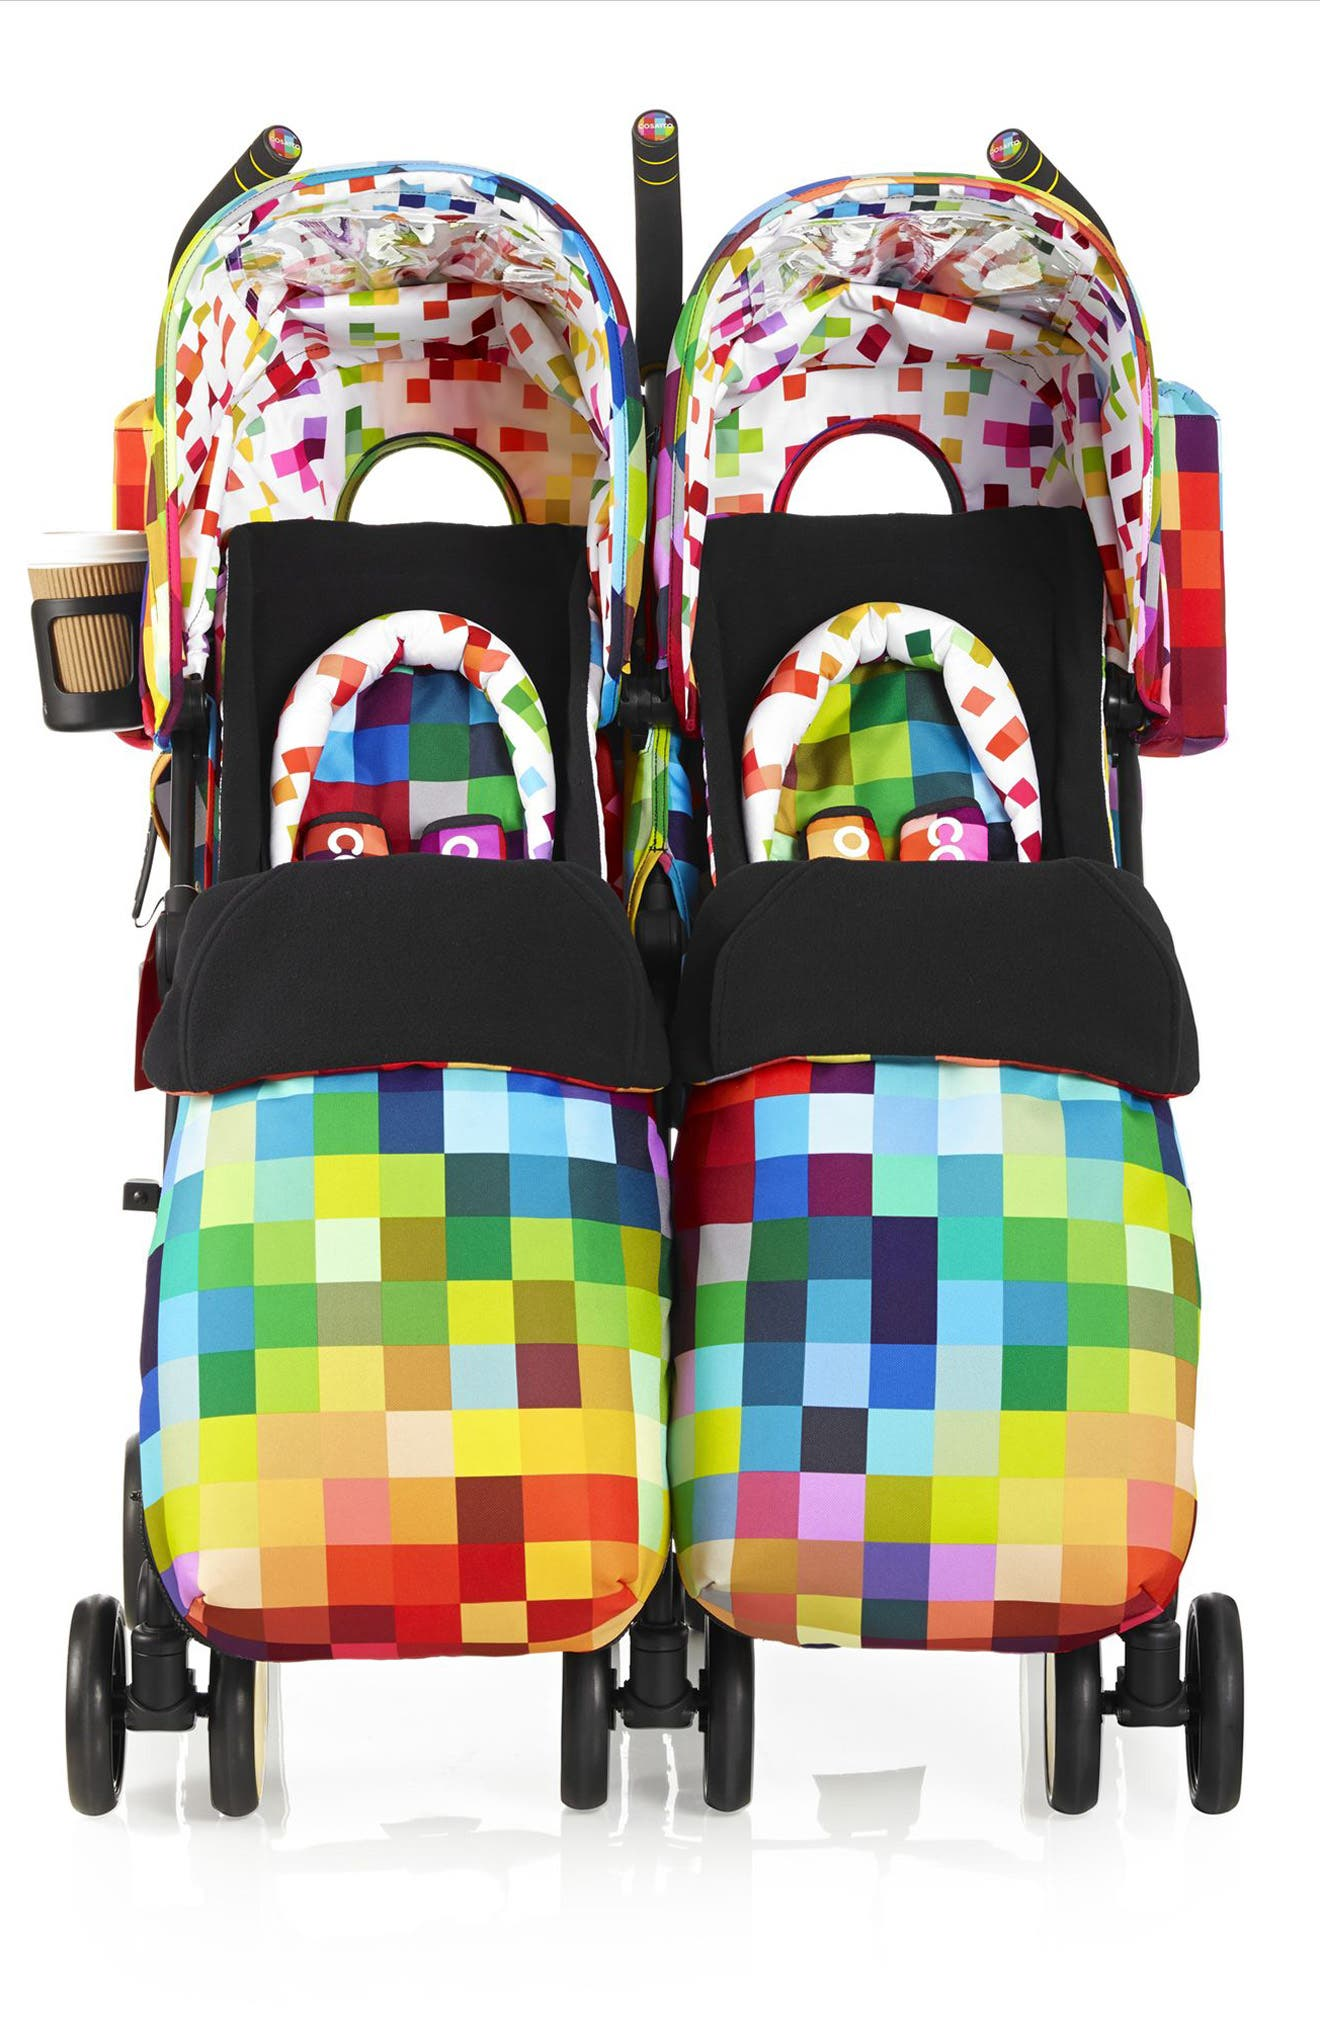 Main Image - Cosatto Supa Dupa Pixelate Double Stroller